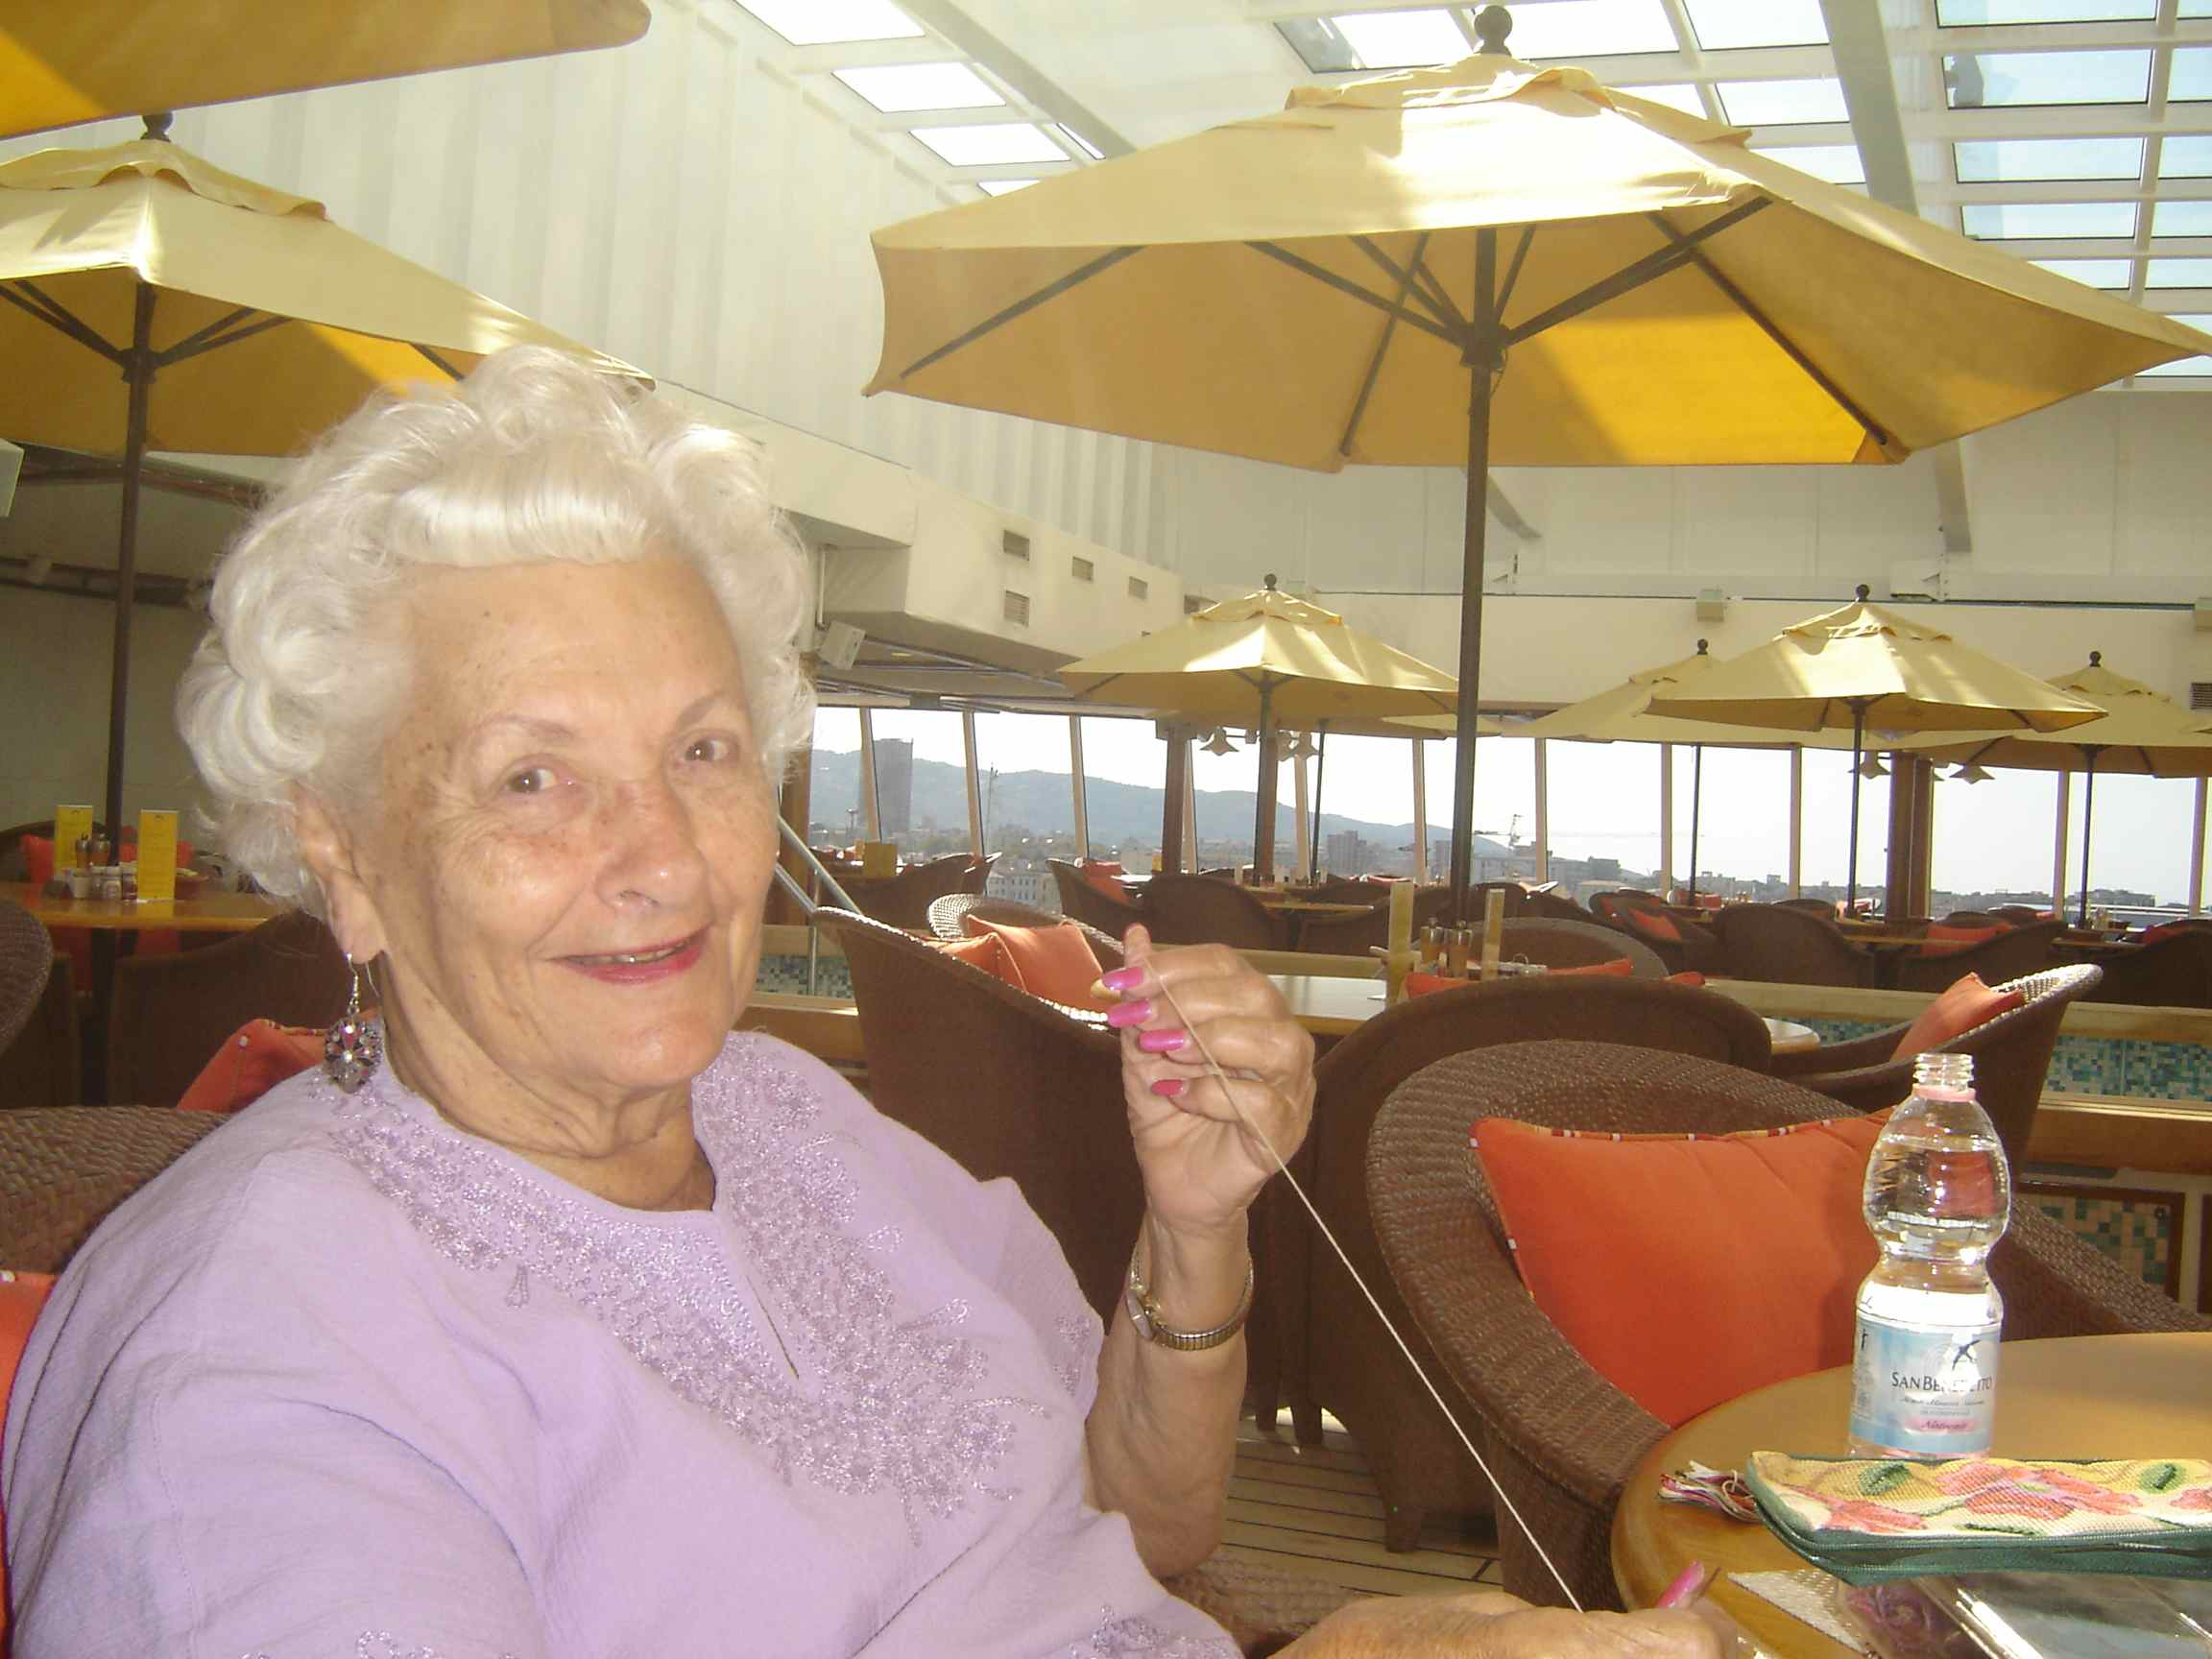 YearOld Mama Lee Lives On A Luxury Cruise Ship - Living on cruise ship